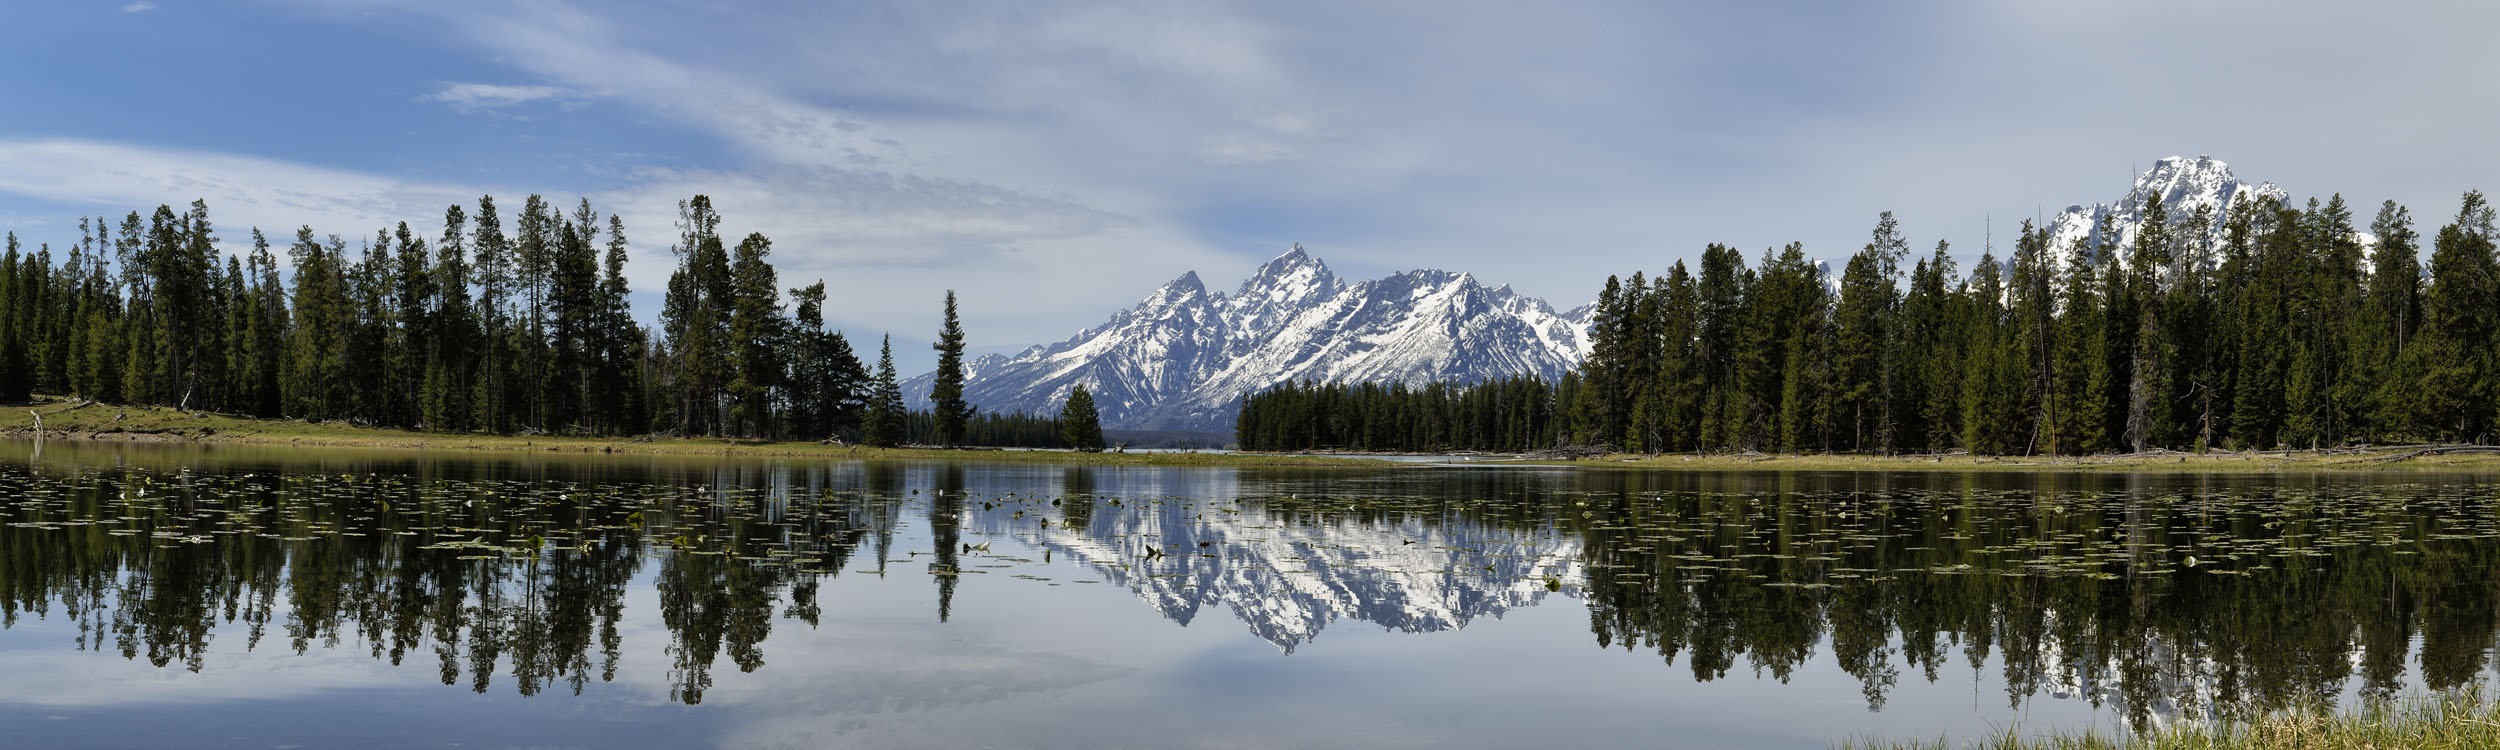 Grand Tetons from Heron Pond